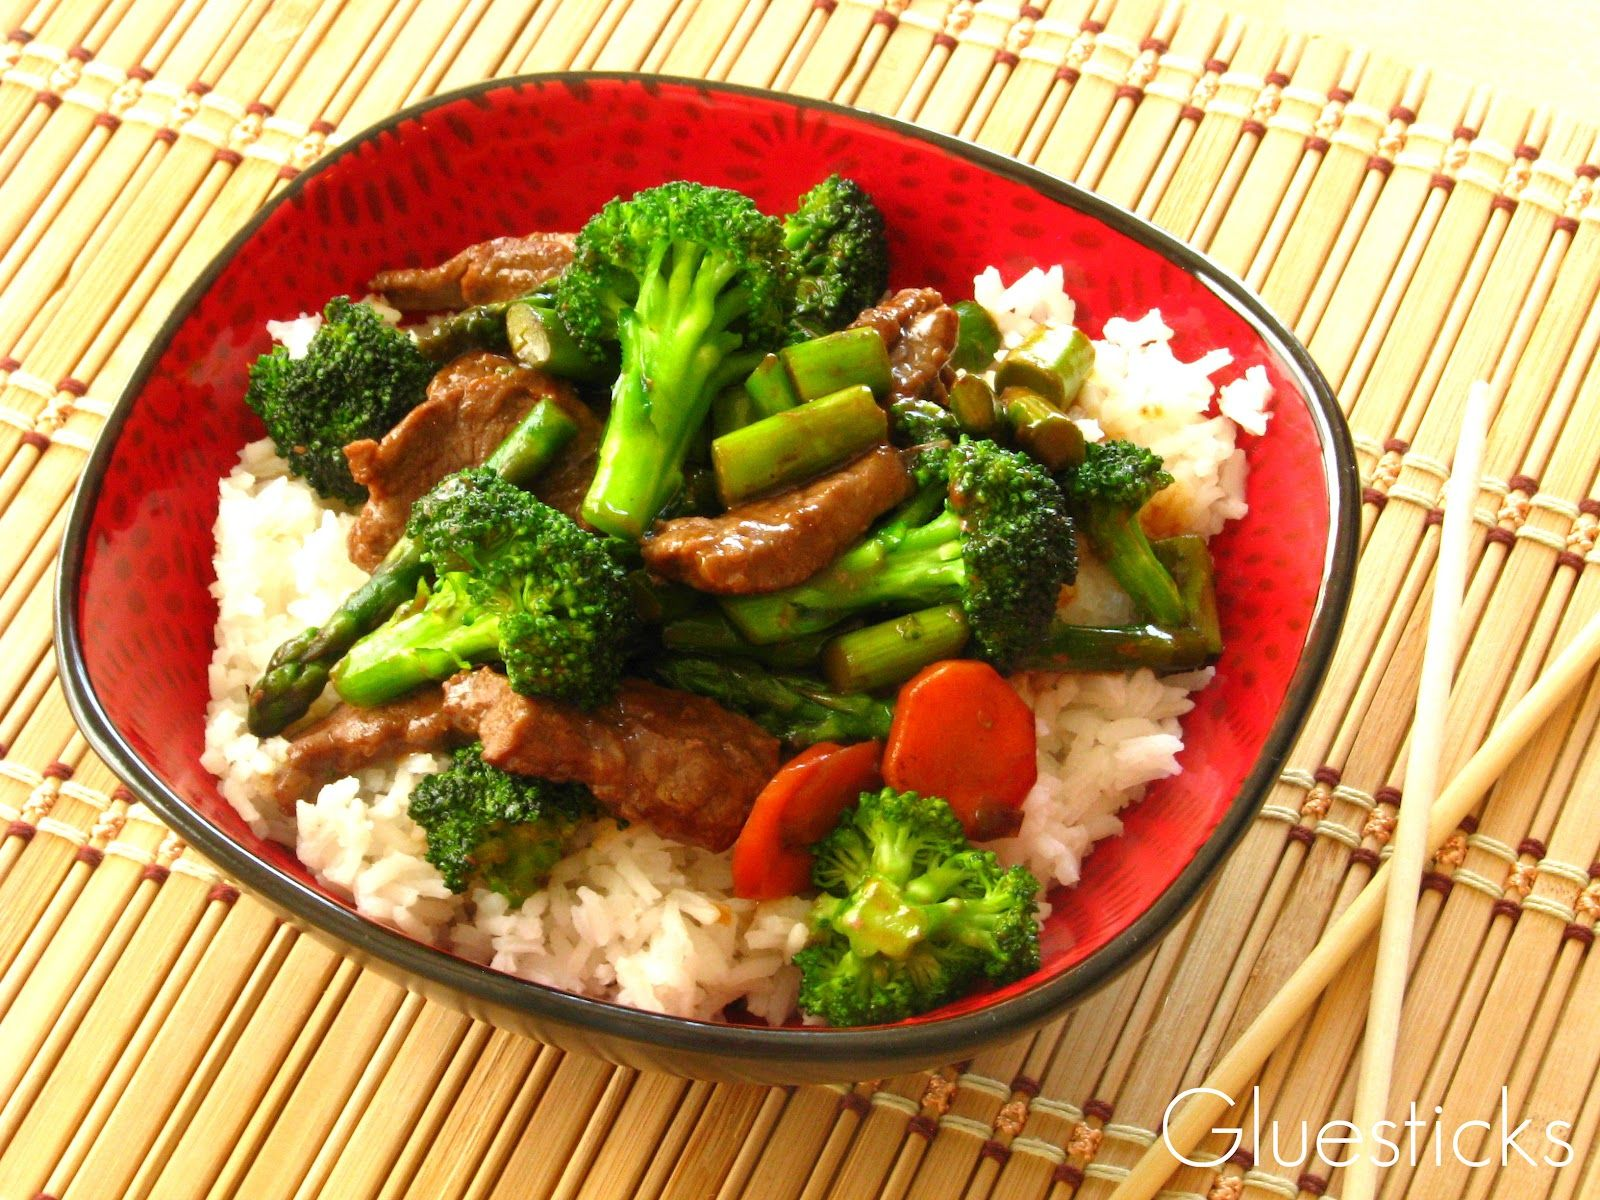 Steak Vegetable Stir Fry And Links To Other Homemade Chinese Food Dishes Homemade Chinese Food Vegetable Dishes